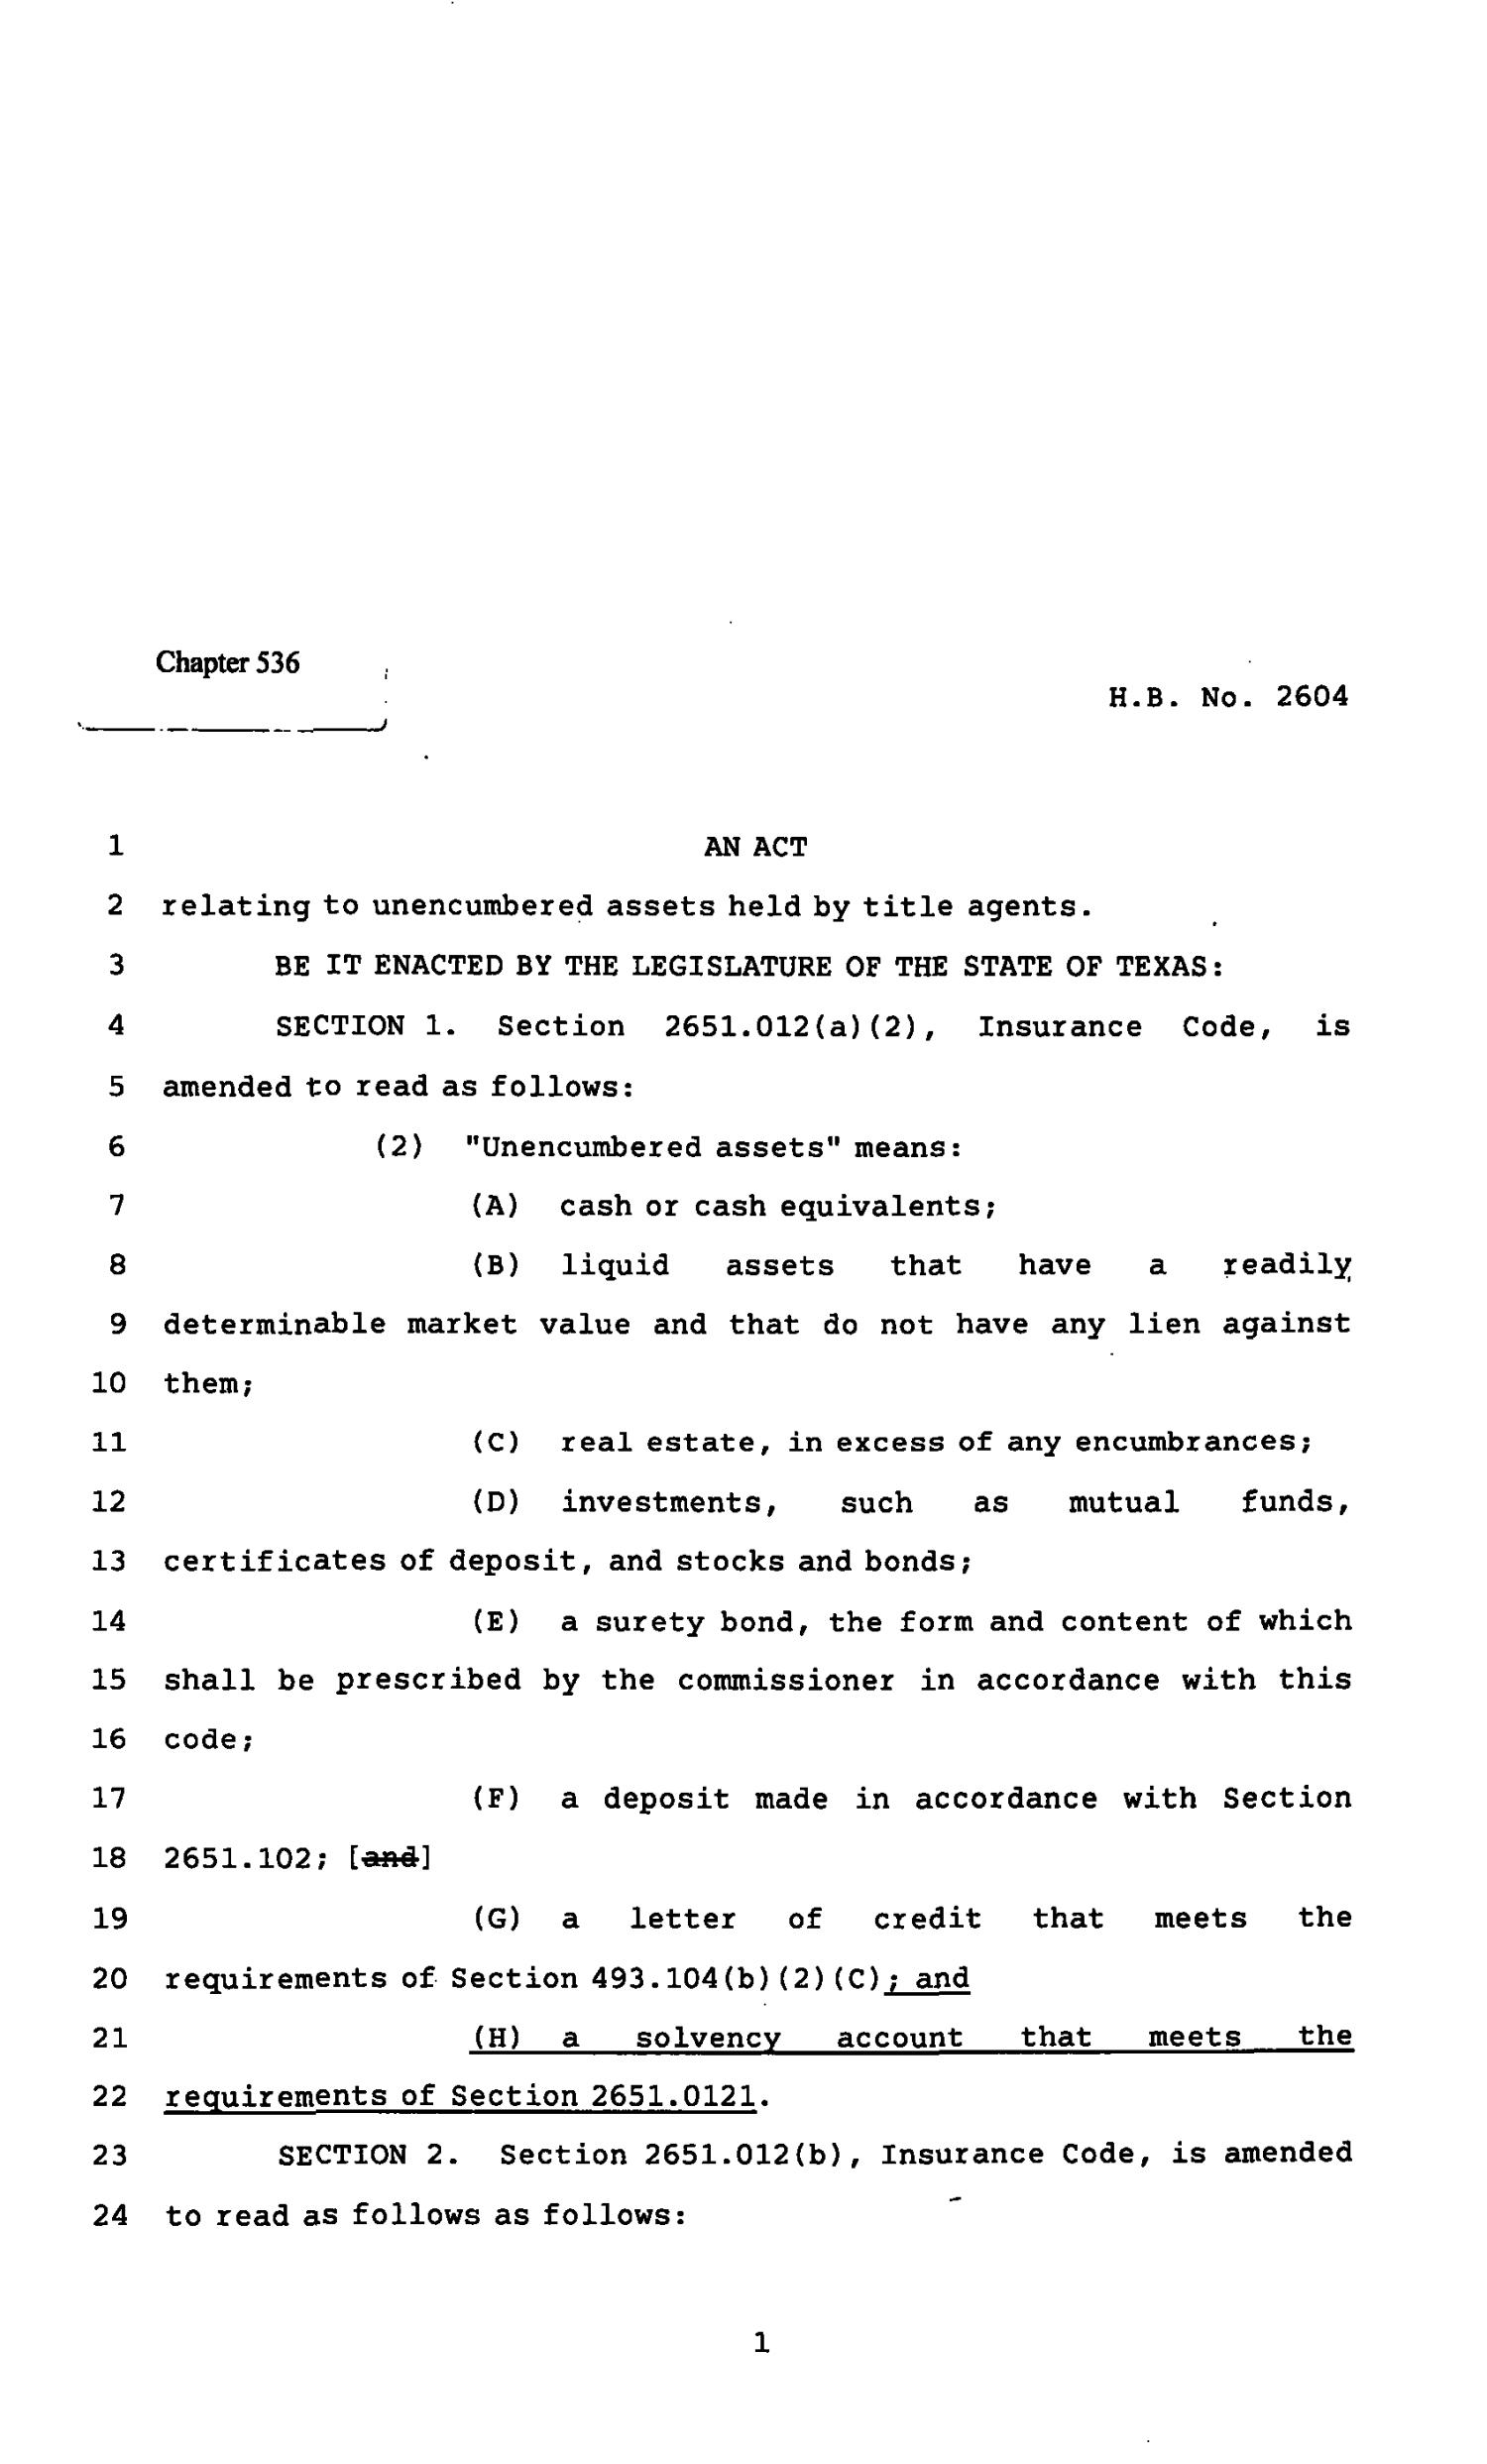 82nd Texas Legislature, Regular Session, House Bill 2604, Chapter 536                                                                                                      [Sequence #]: 1 of 7